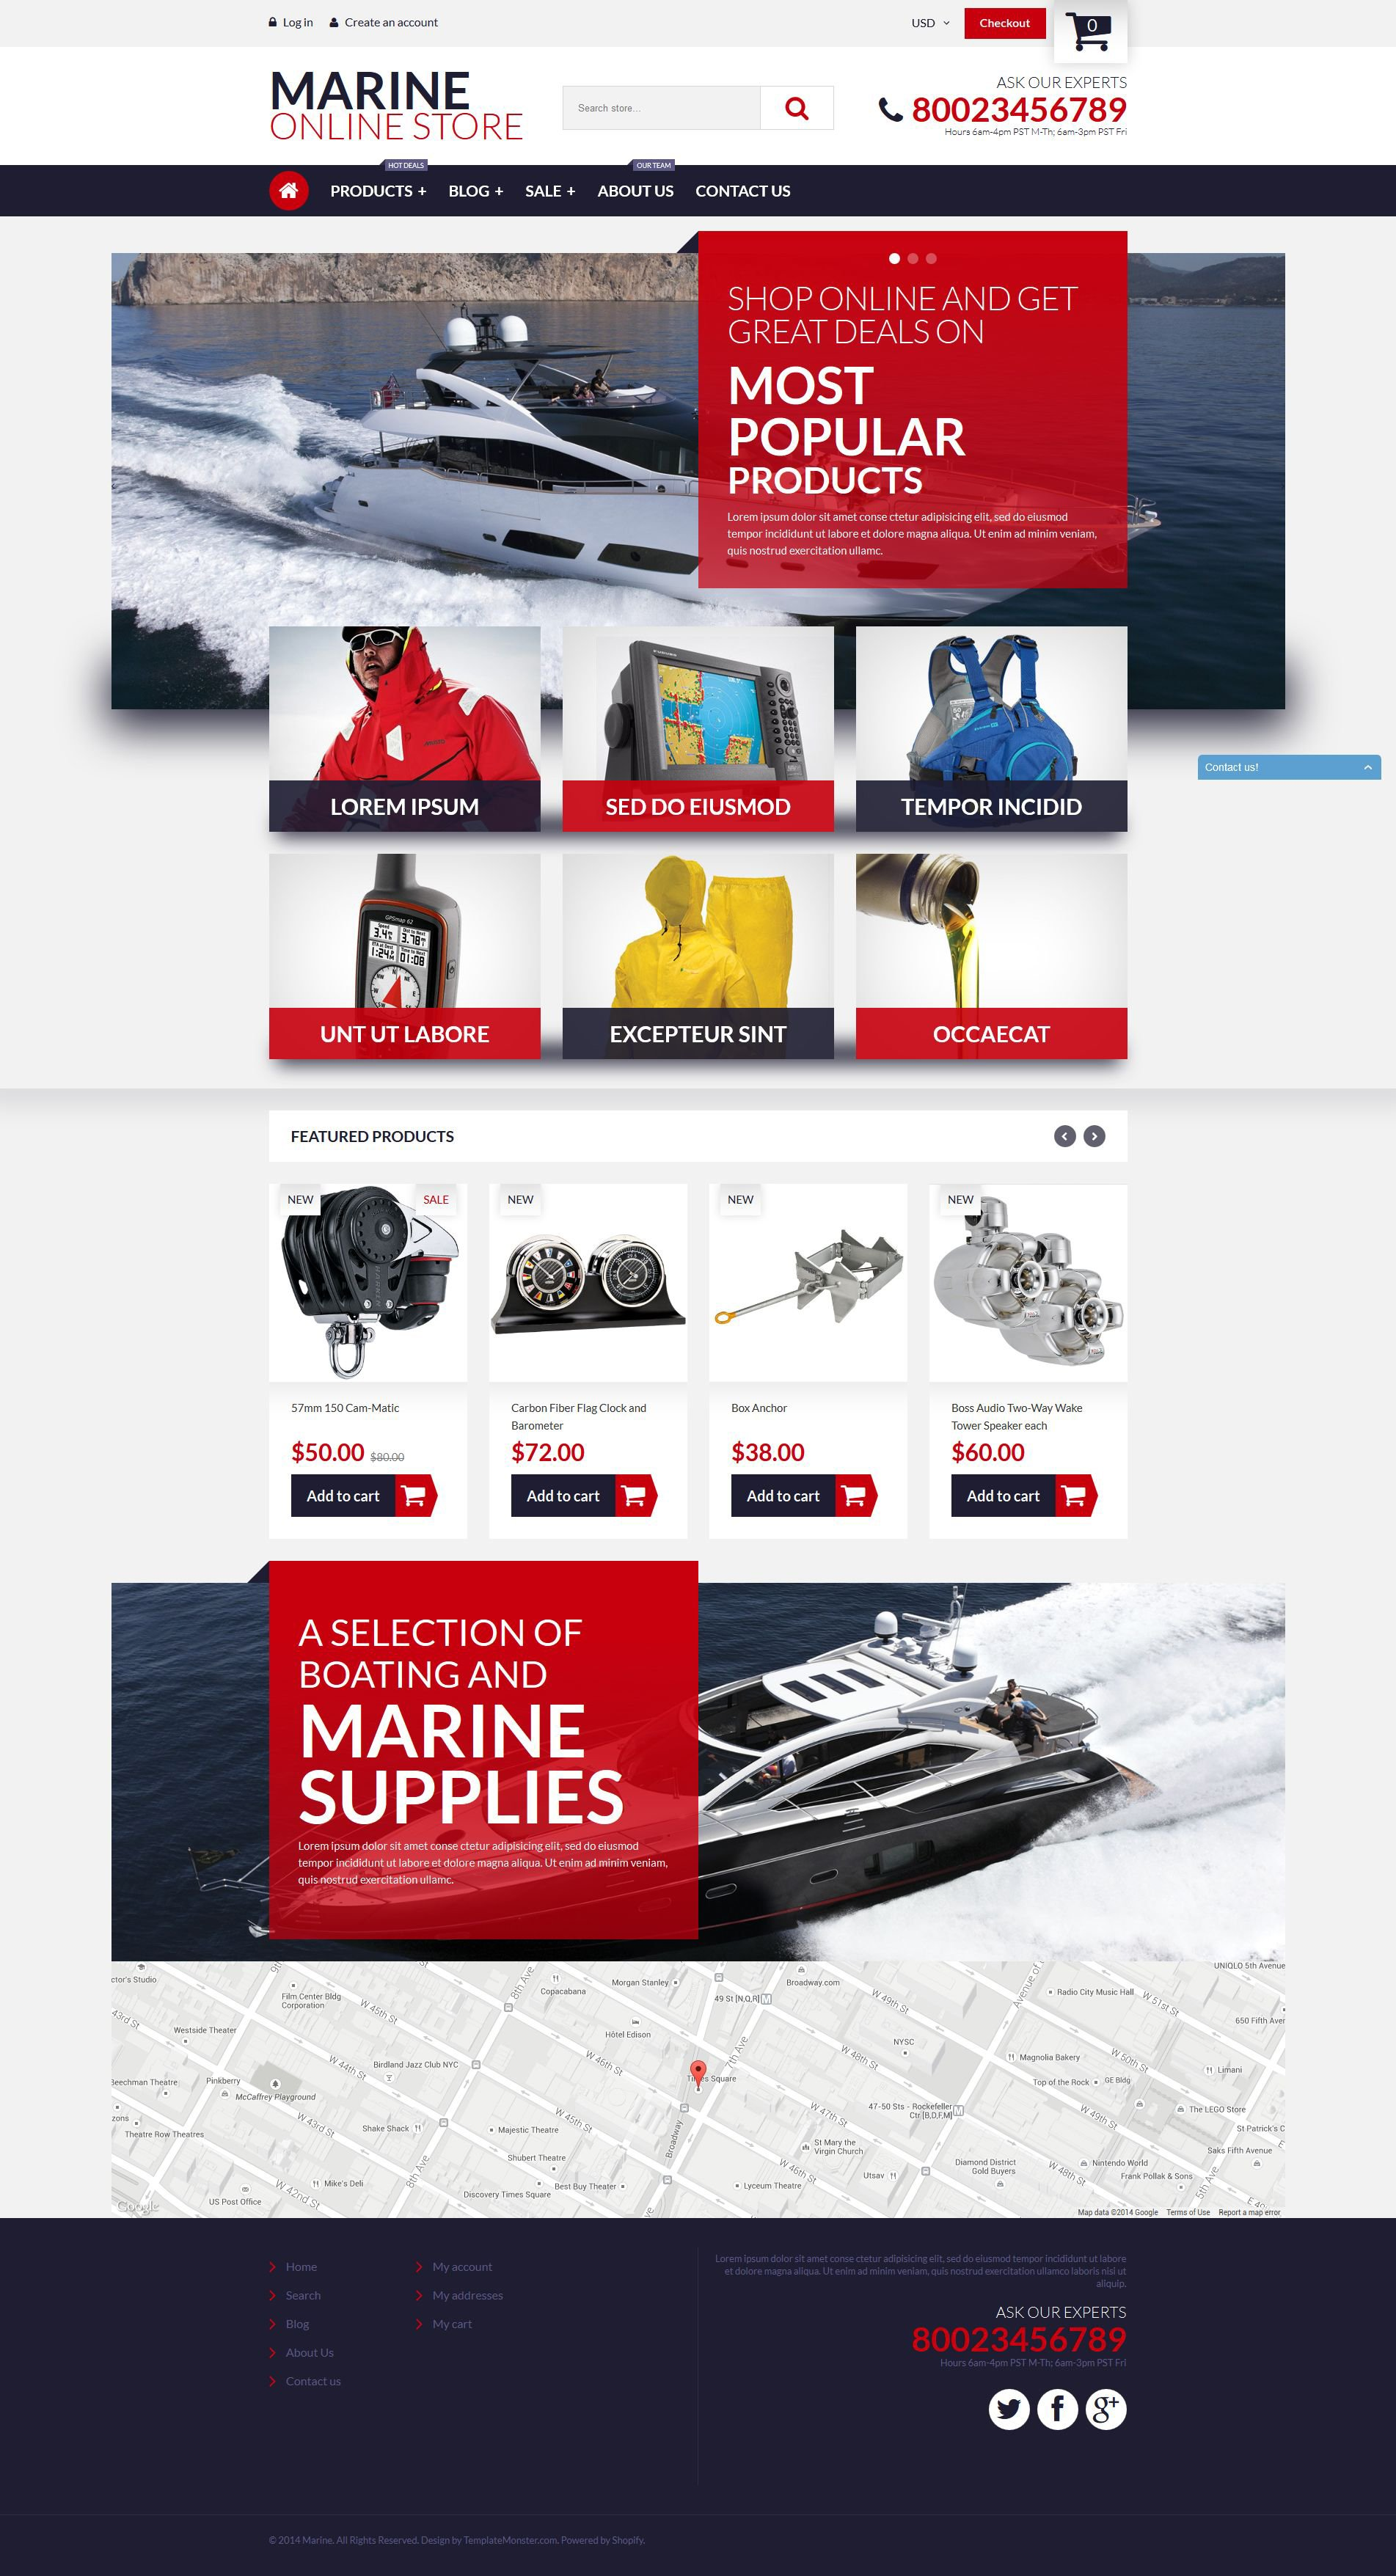 Marine Online Store Shopify Theme